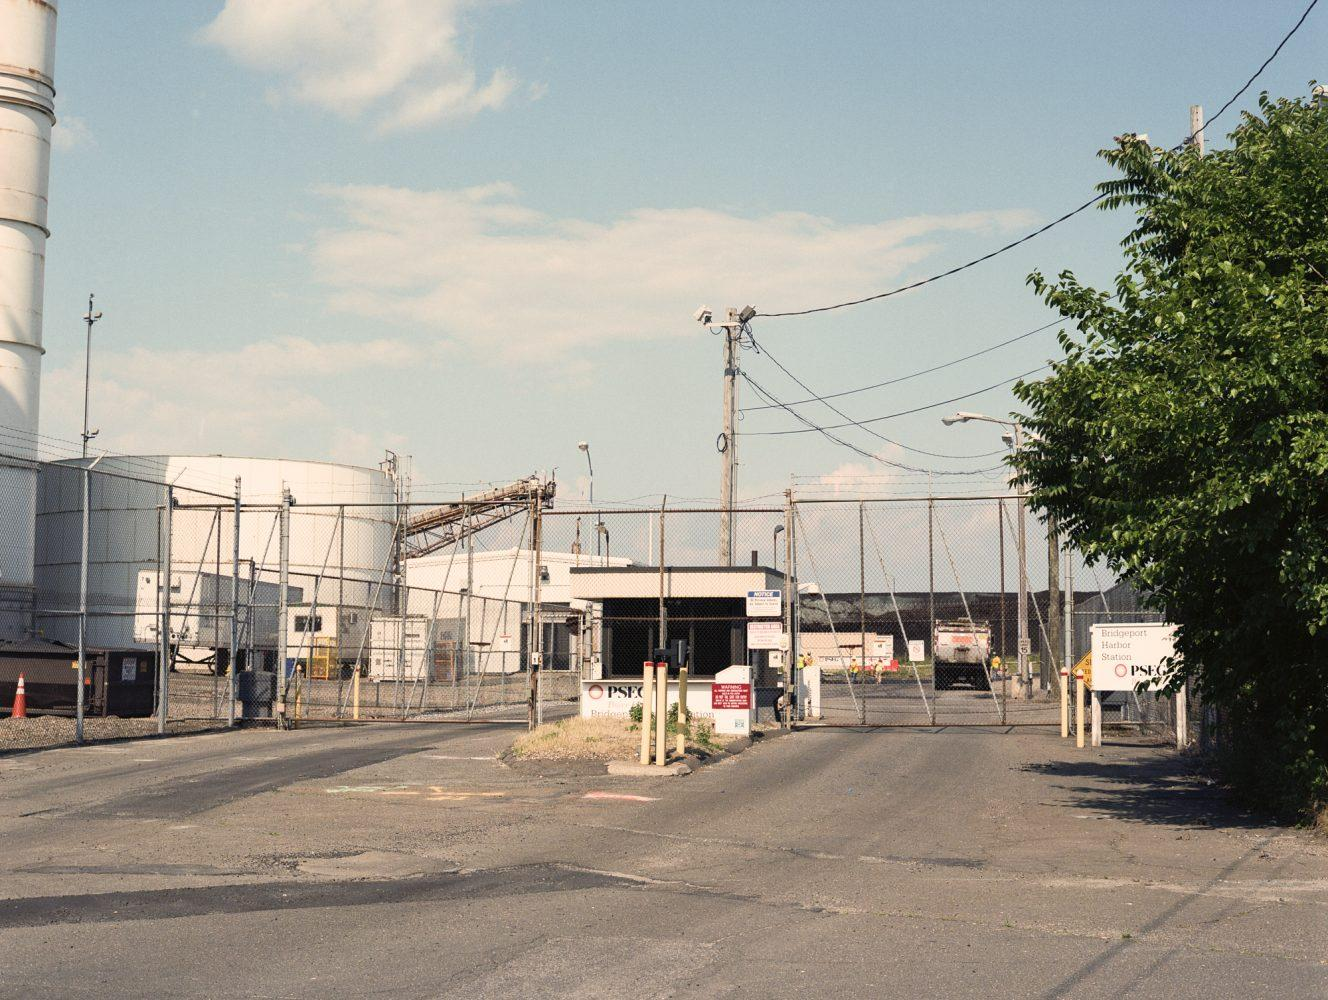 Entrance to the PSEG power plant in Bridgeport, Conn., surrounded by barbed wire fencing.